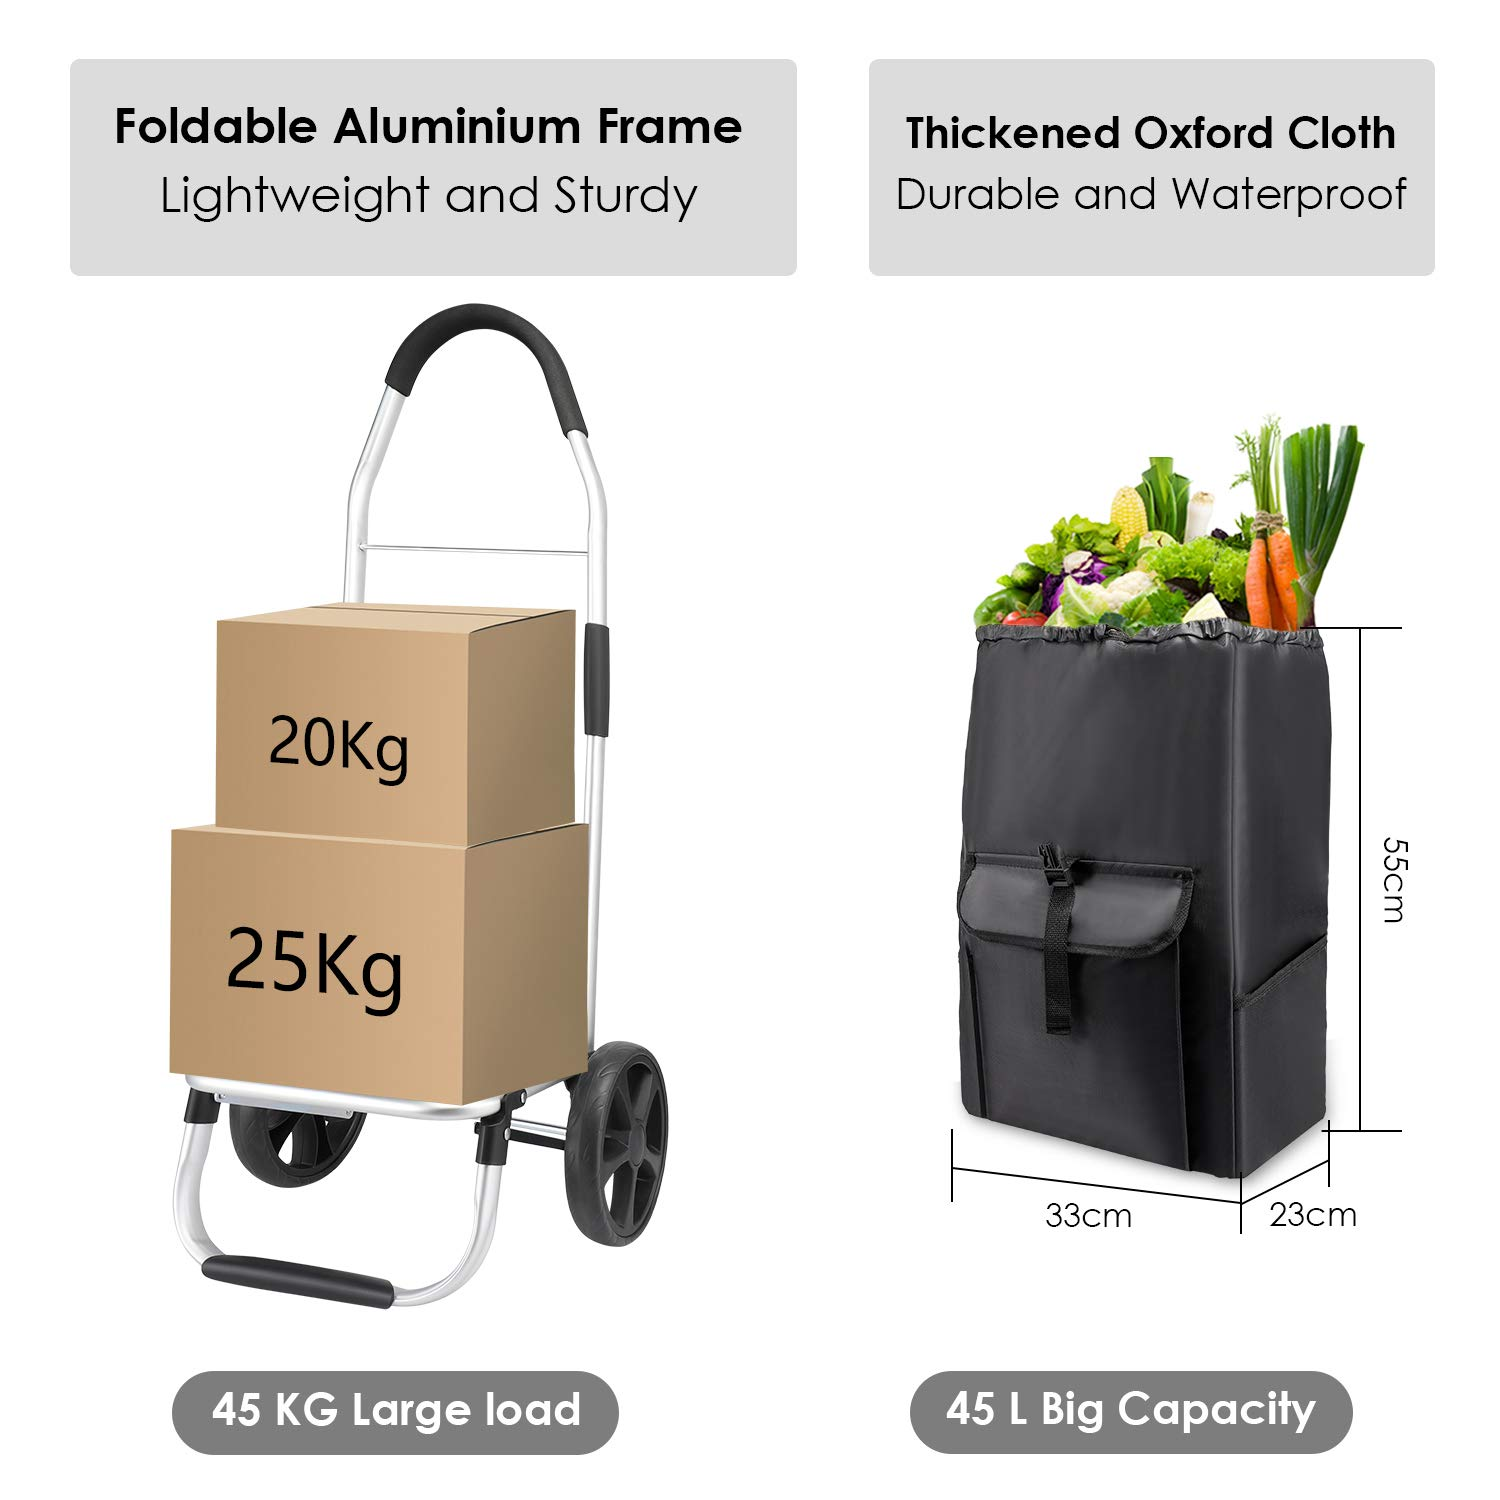 45L Push//Pull Max Capacity 45 kg Folding Shopping Cart on Wheels Large and Lightweight Shopping Trolley with Detachable Bag MFAVOUR Shopping Trolley